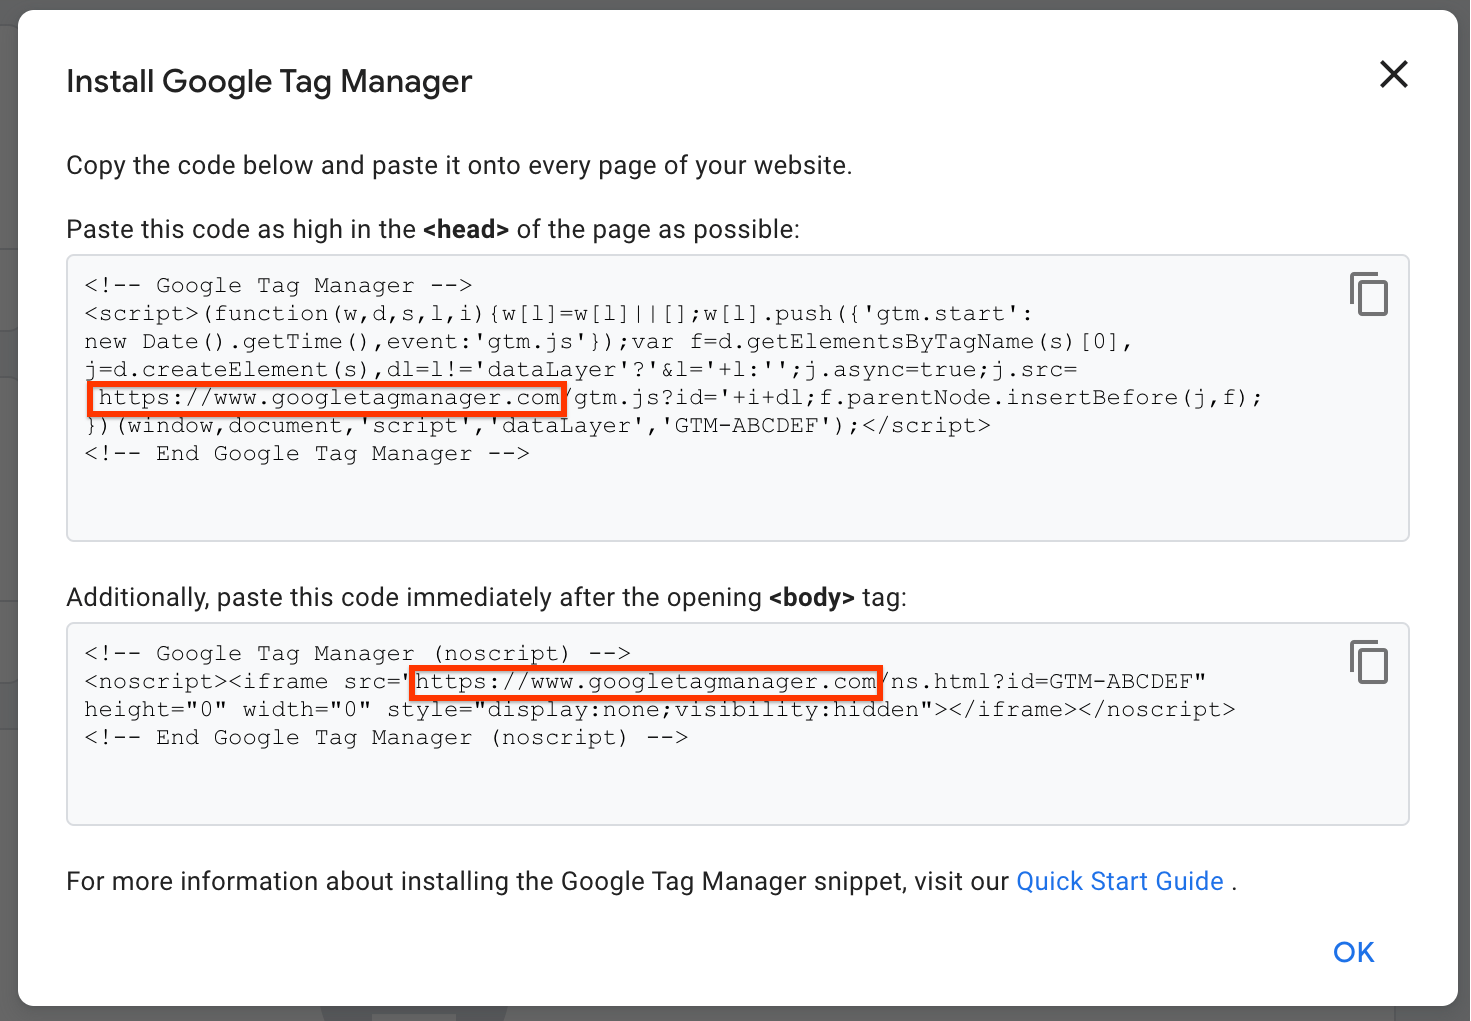 Screenshot of the Google Tag Manager snippet for gtm.js and ns.html insertion